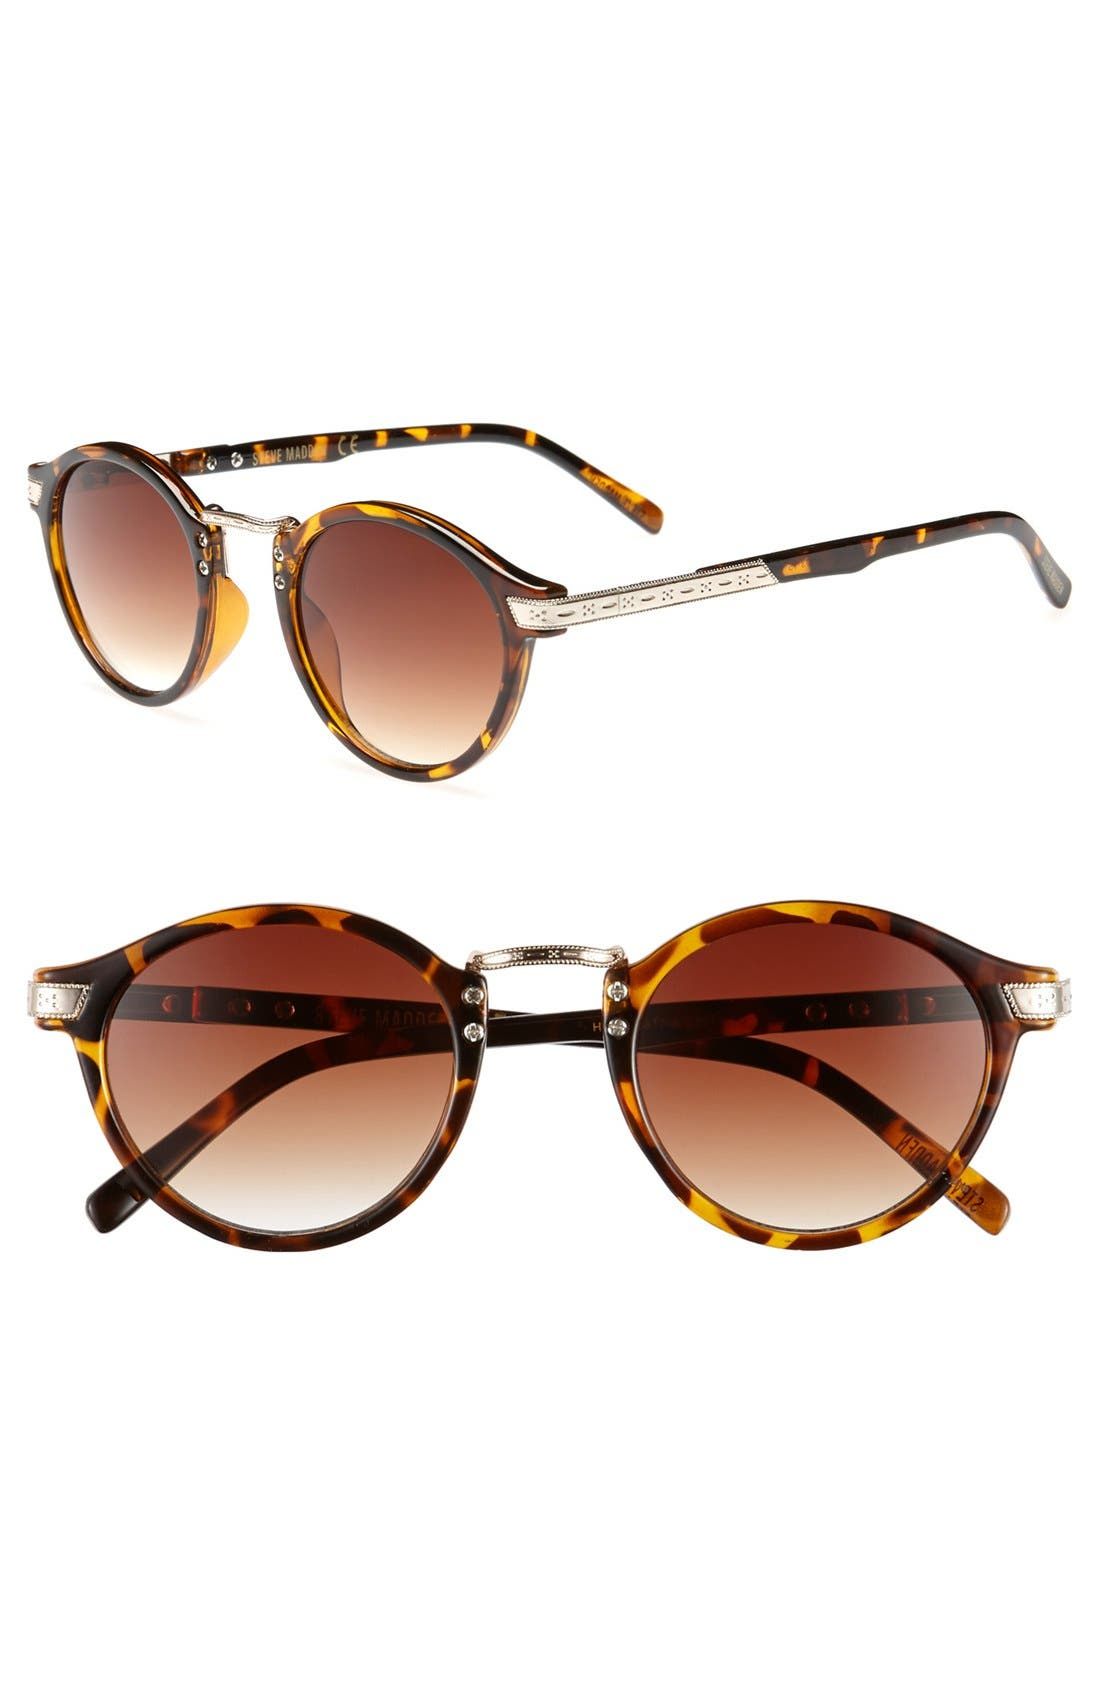 Main Image - Steve Madden 45mm Retro Sunglasses